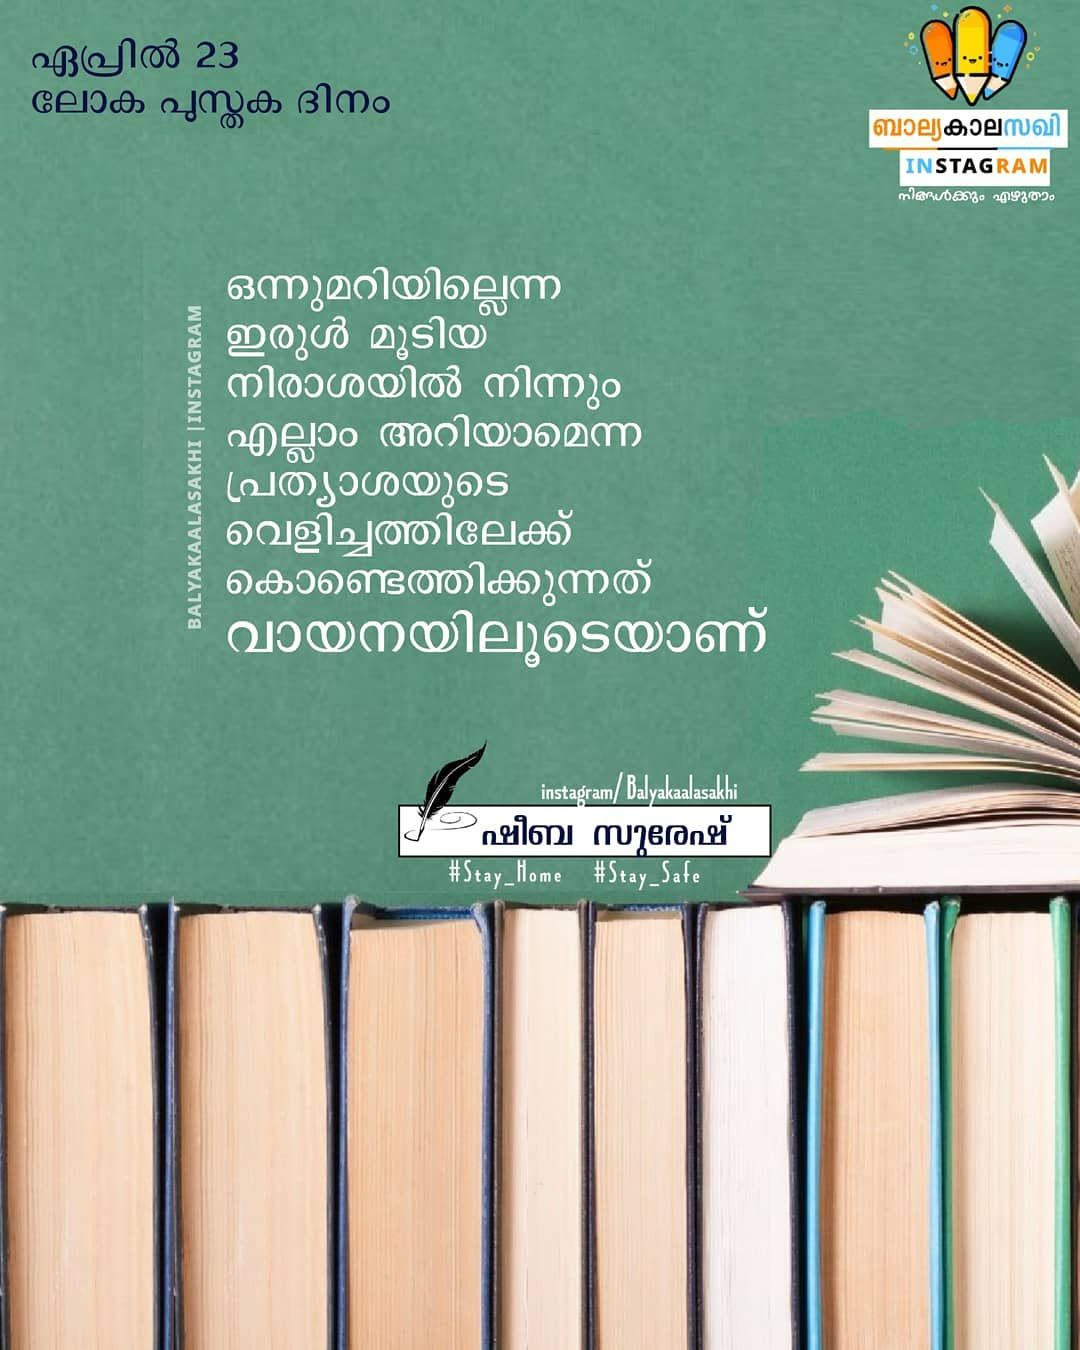 Pin by Sajan on മലയാളം in 2020 Malayalam quotes, Quotes